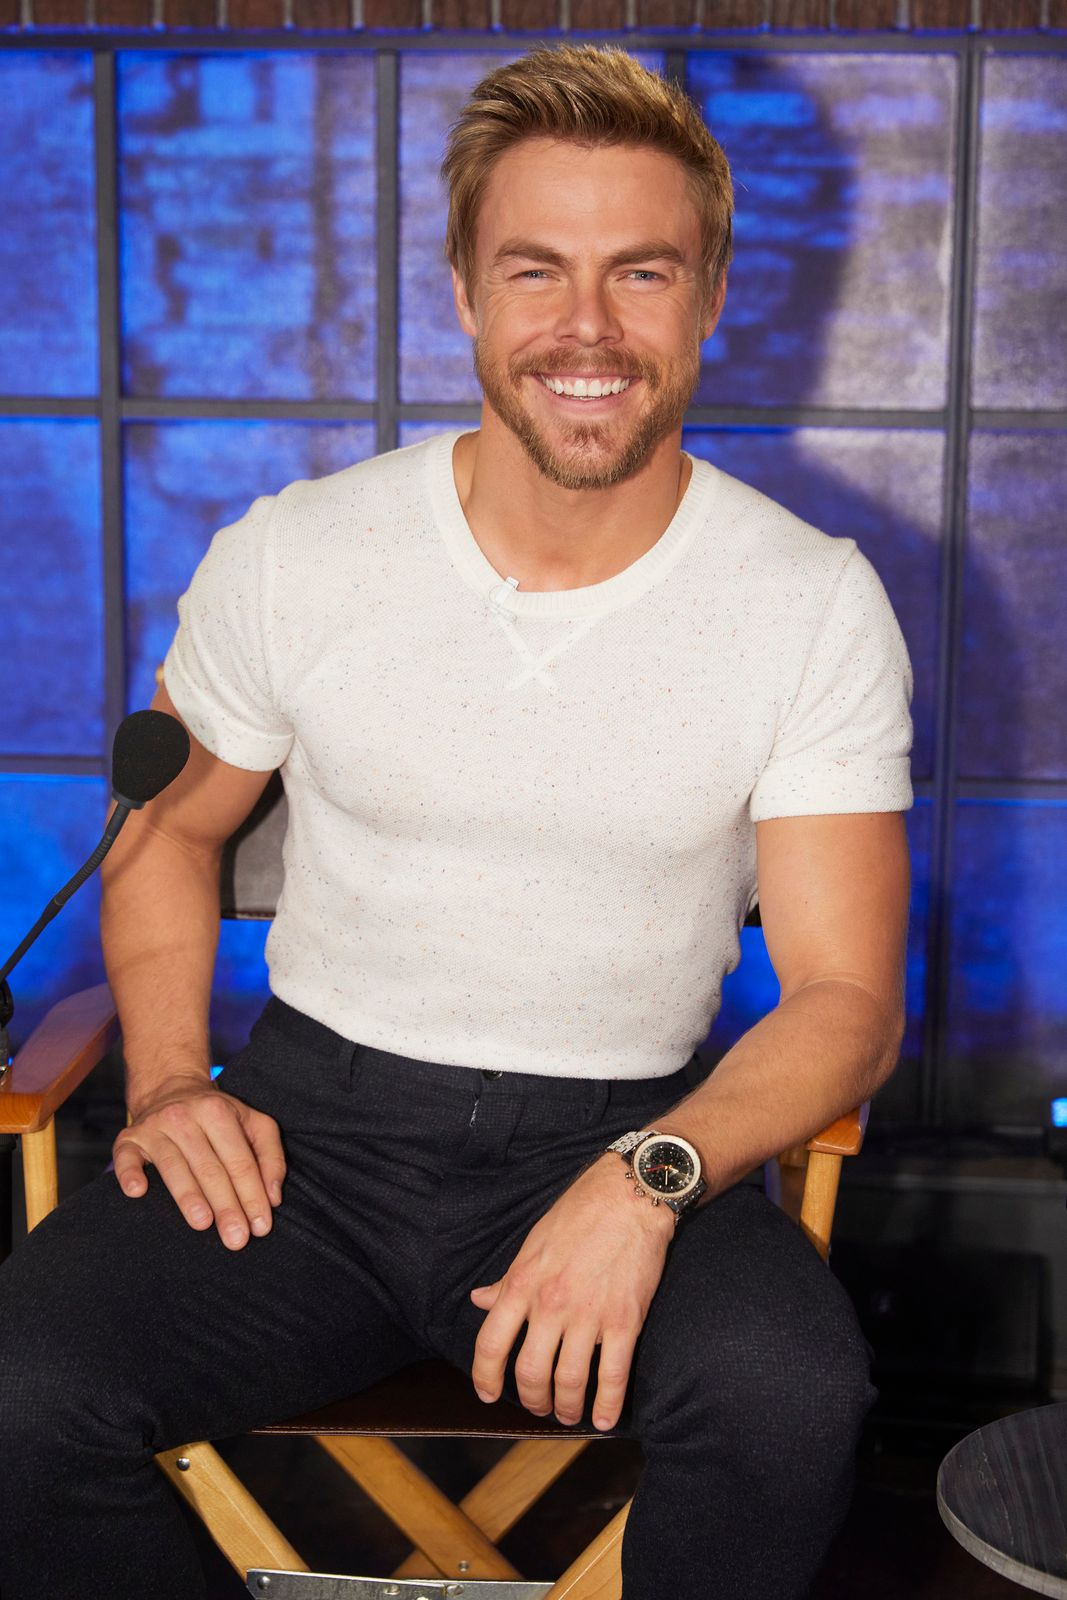 Derek Hough on The Duels 3 Episode 408. | Getty Images